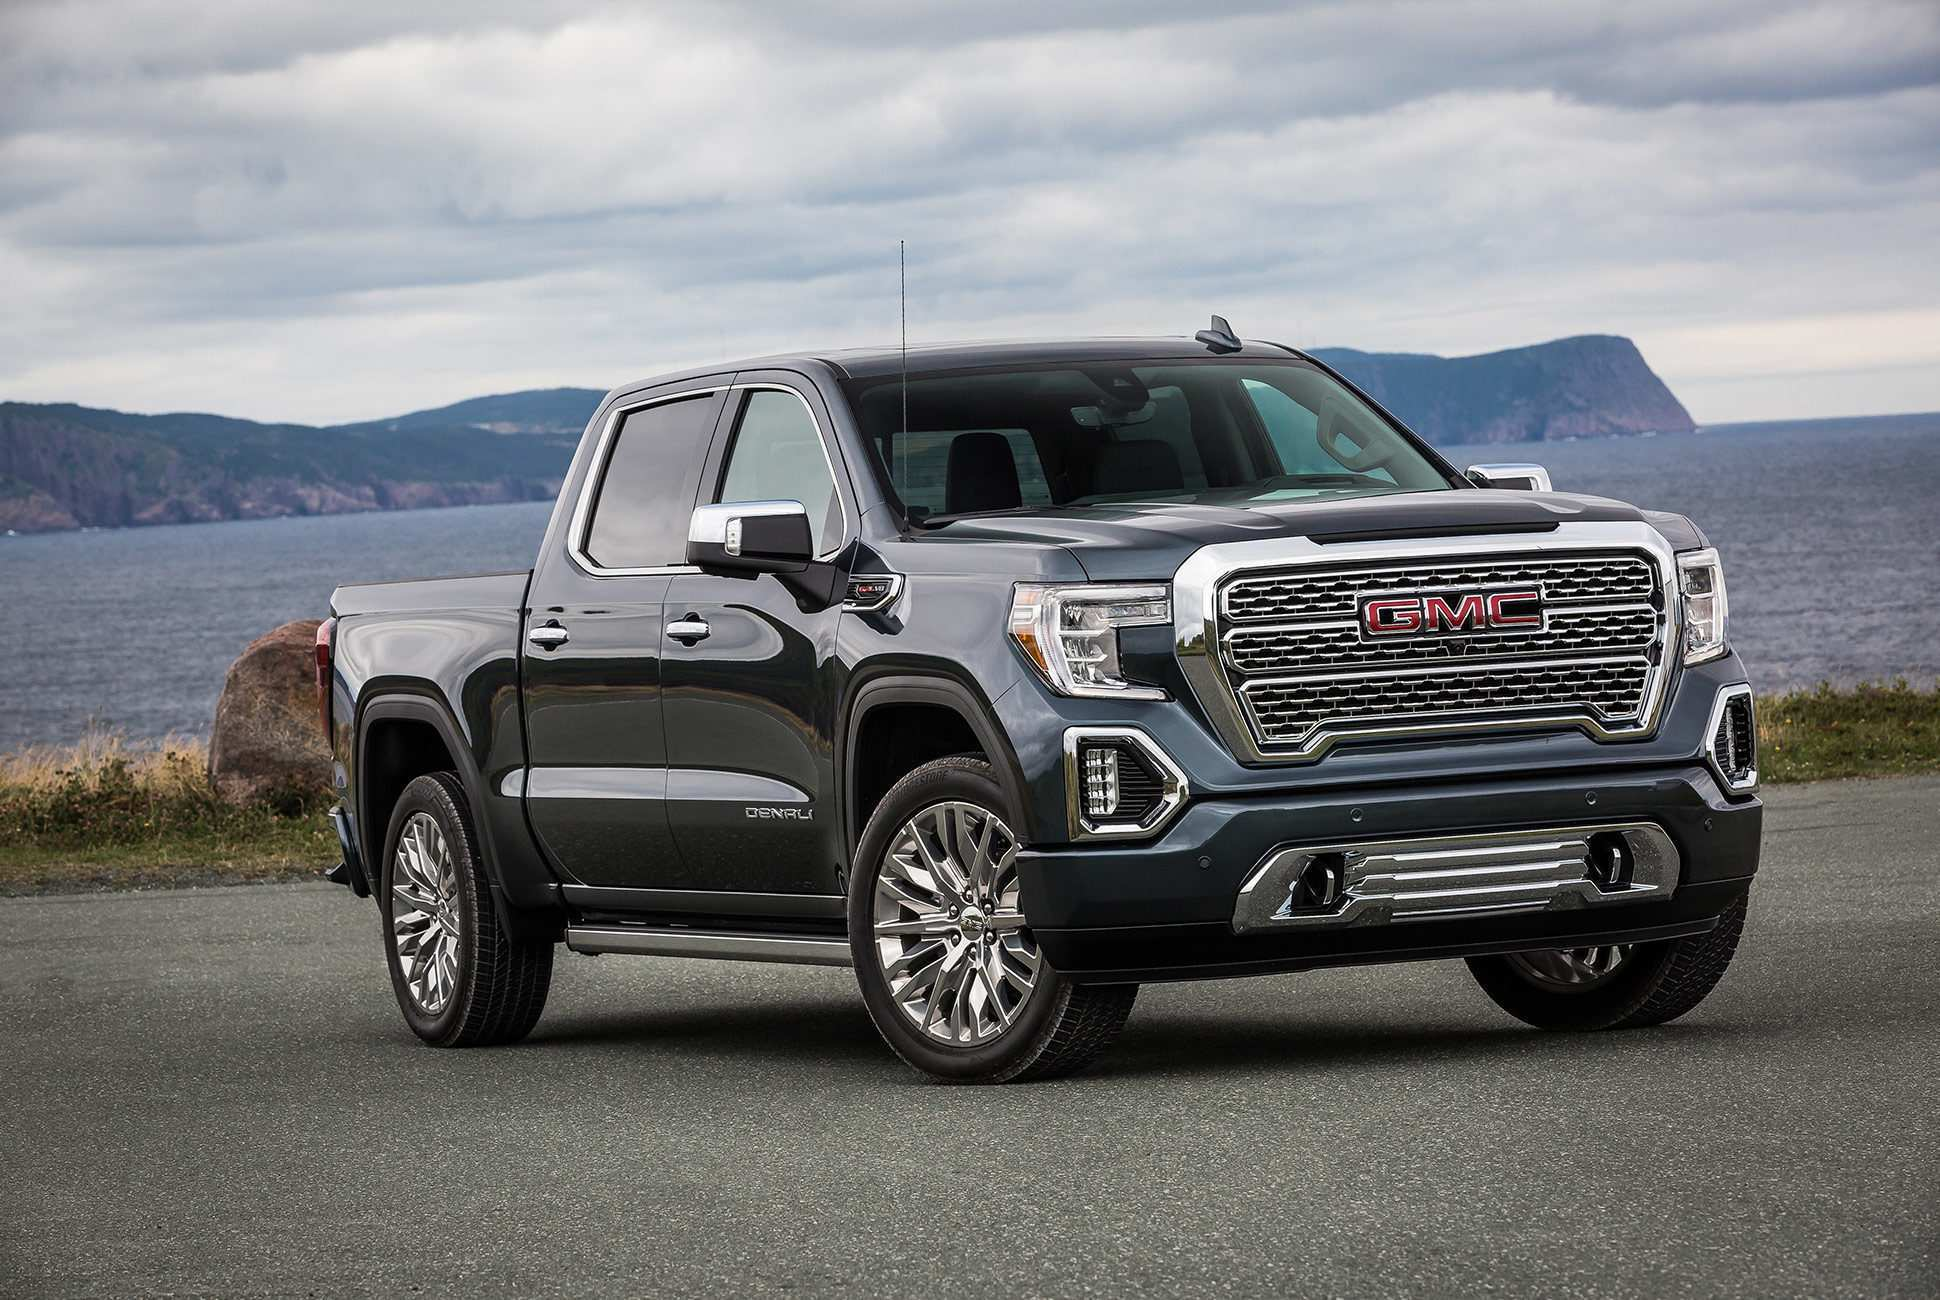 74 All New 2019 GMC Sierra 1500 Speed Test